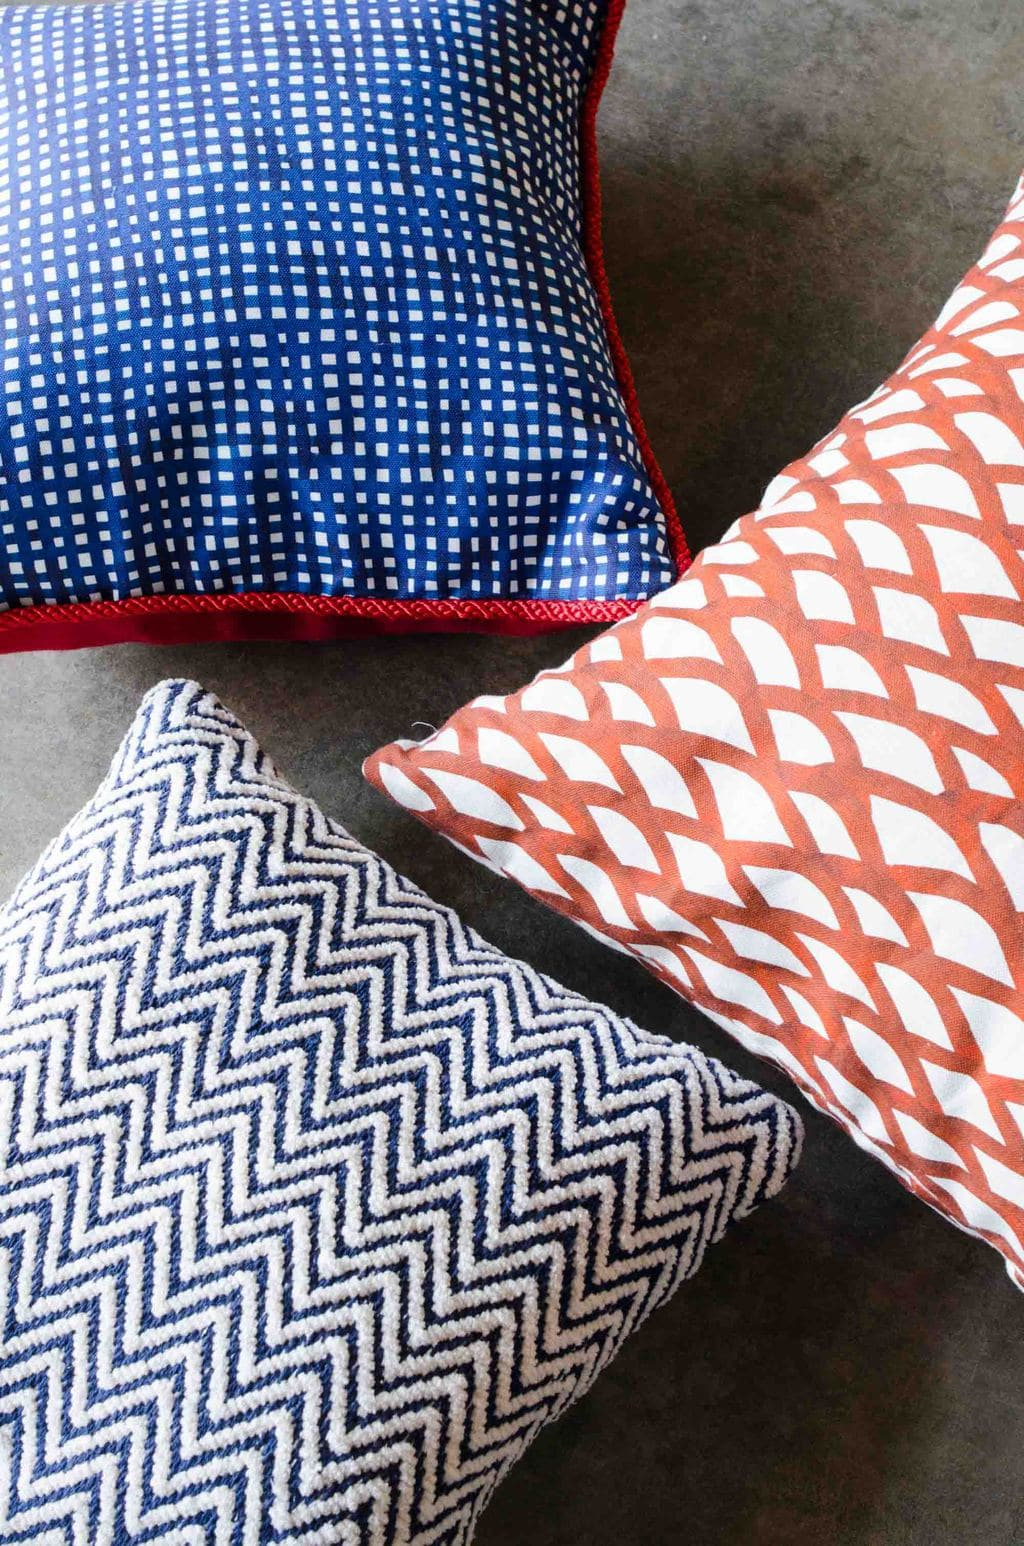 Red white and blue patterned pillows in Steve McKenzie's on @thouswellblog